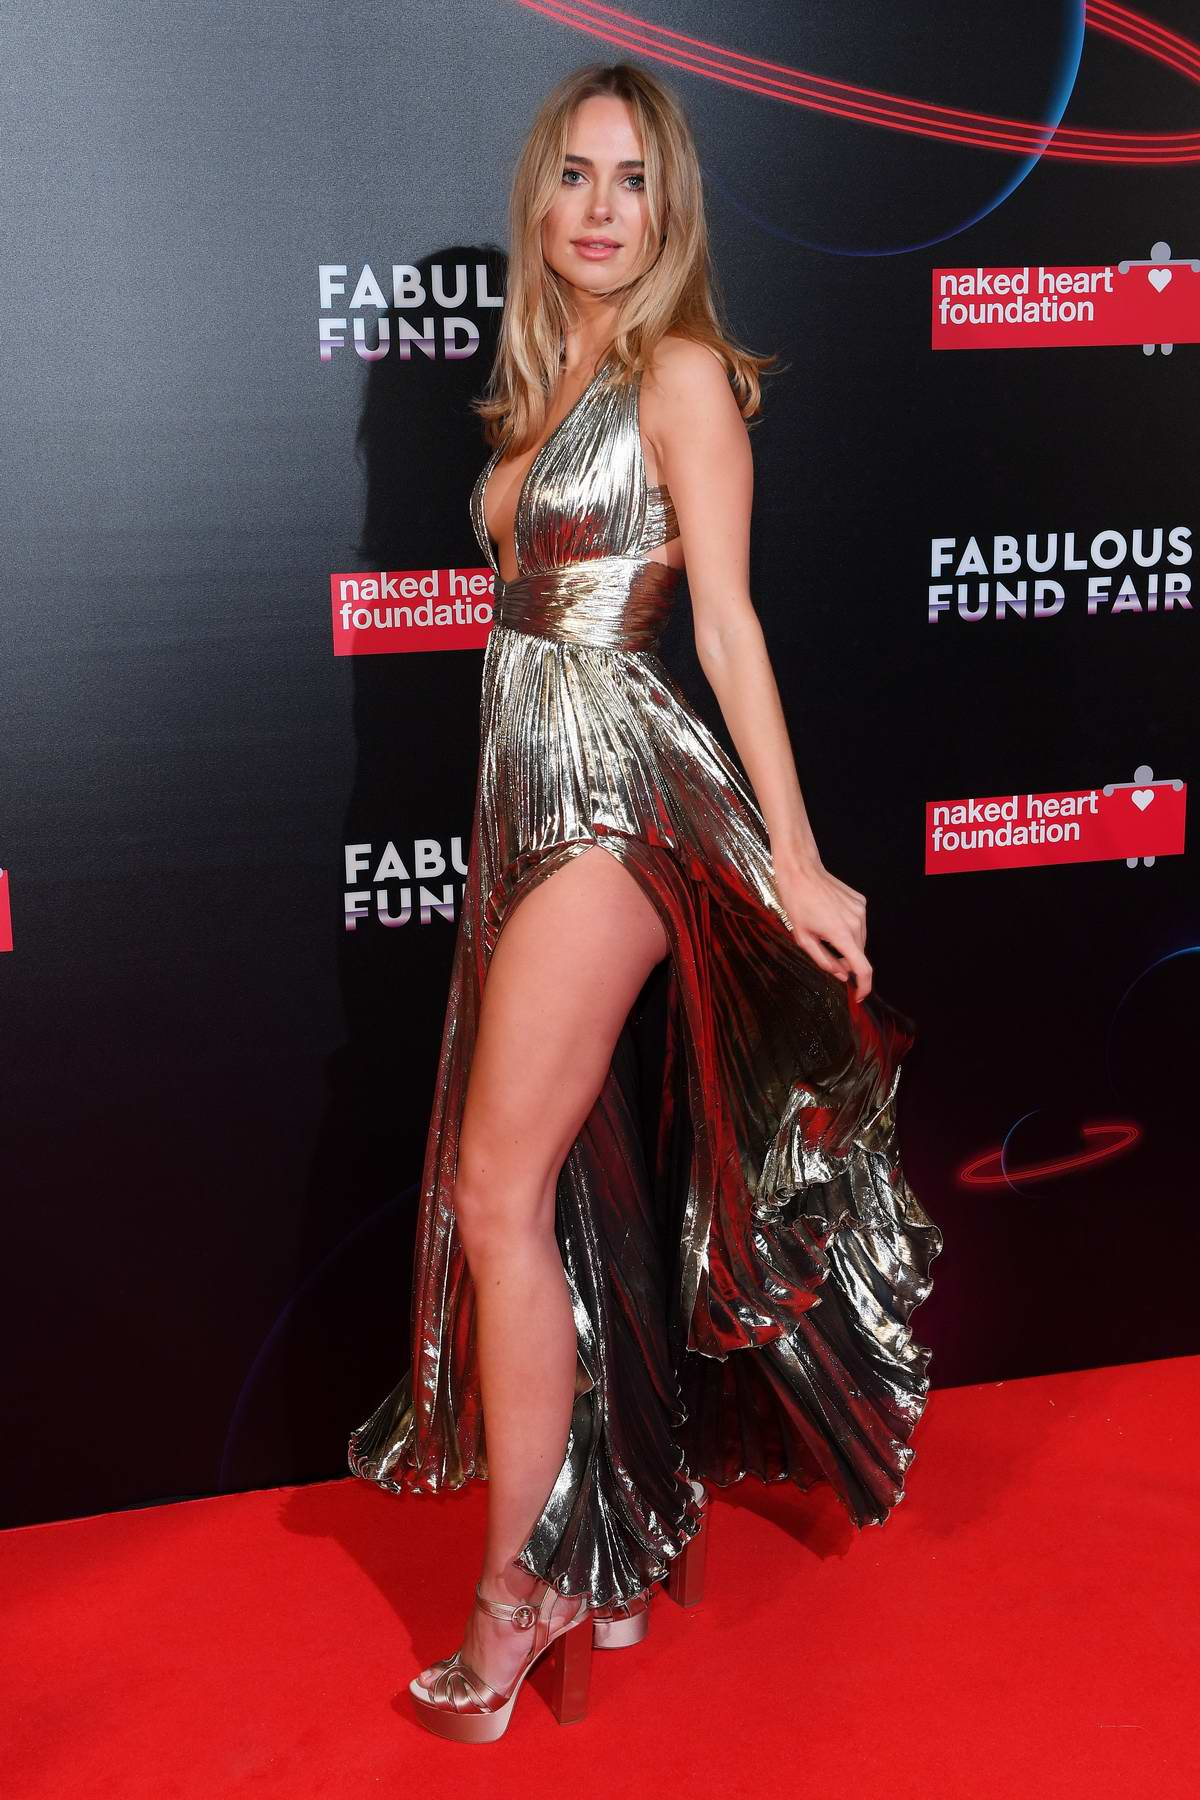 Kimberley Garner attends Fabulous Fund Fair in London